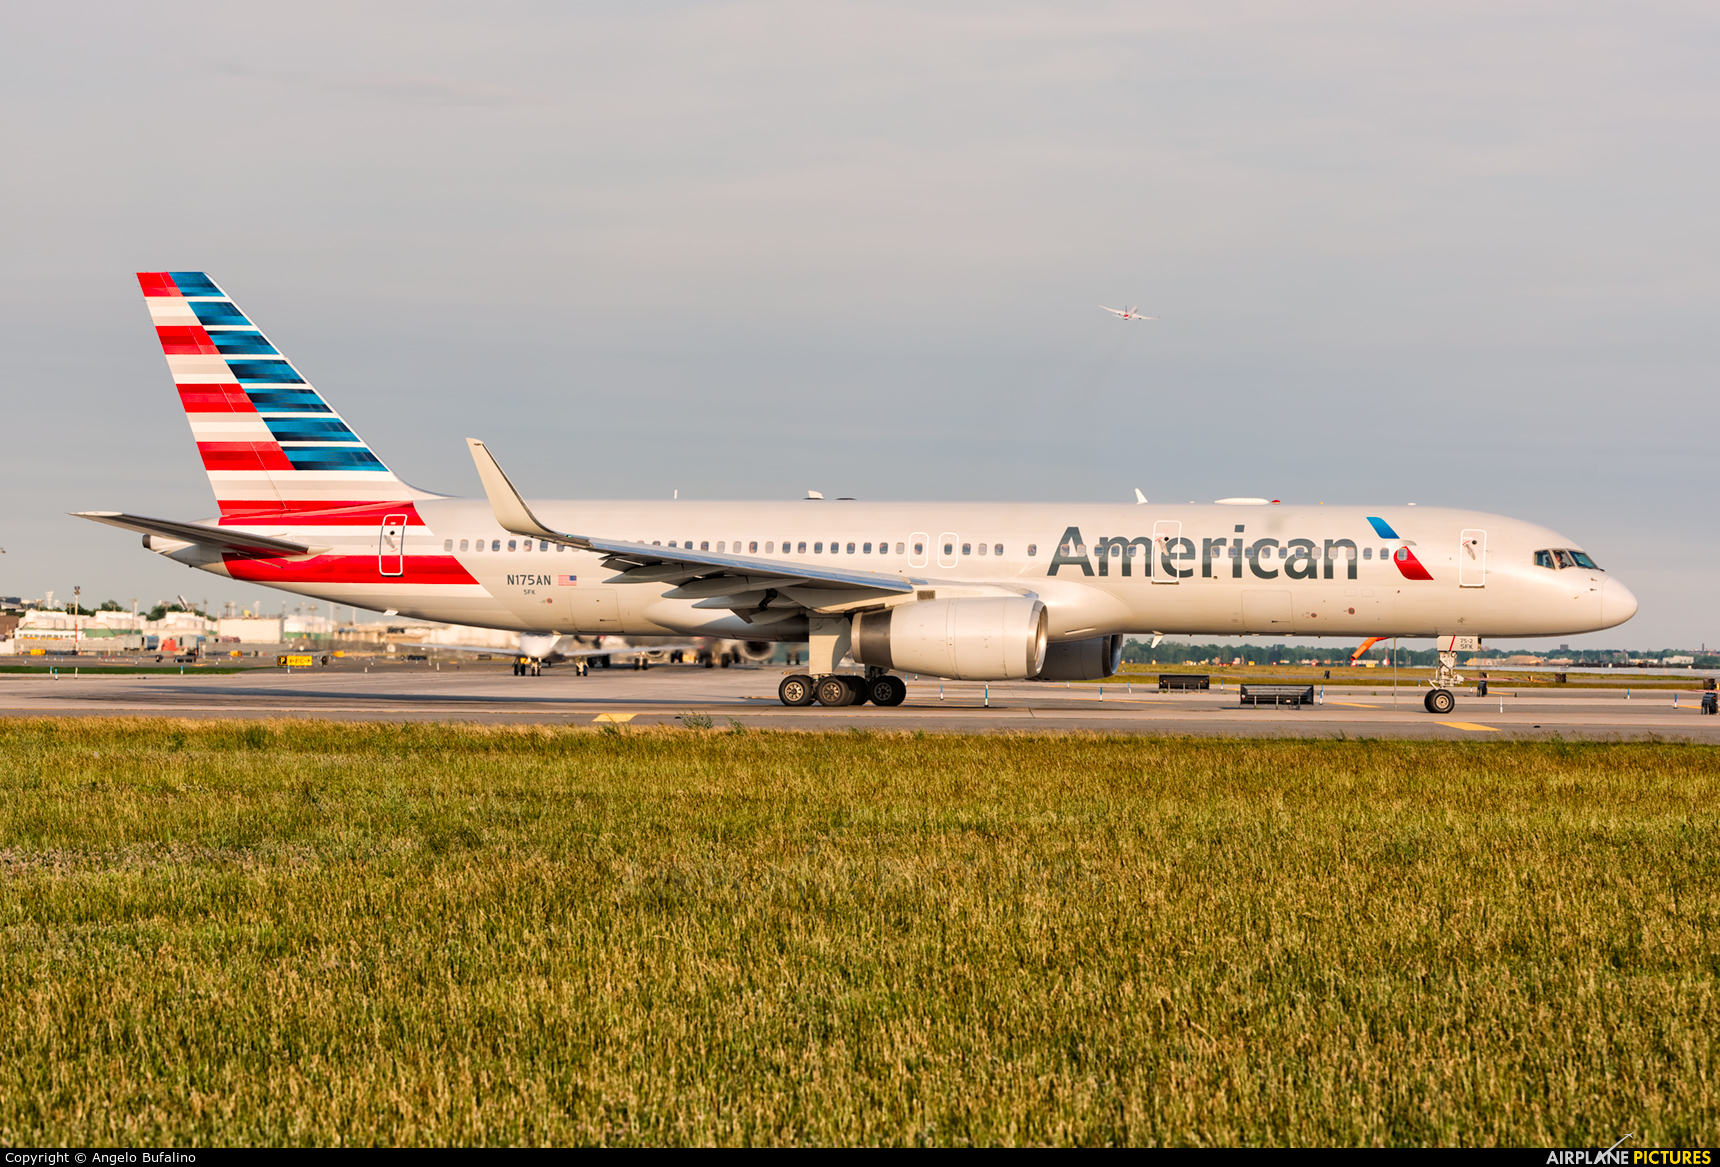 American Airlines N175AN aircraft at New York - John F. Kennedy Intl